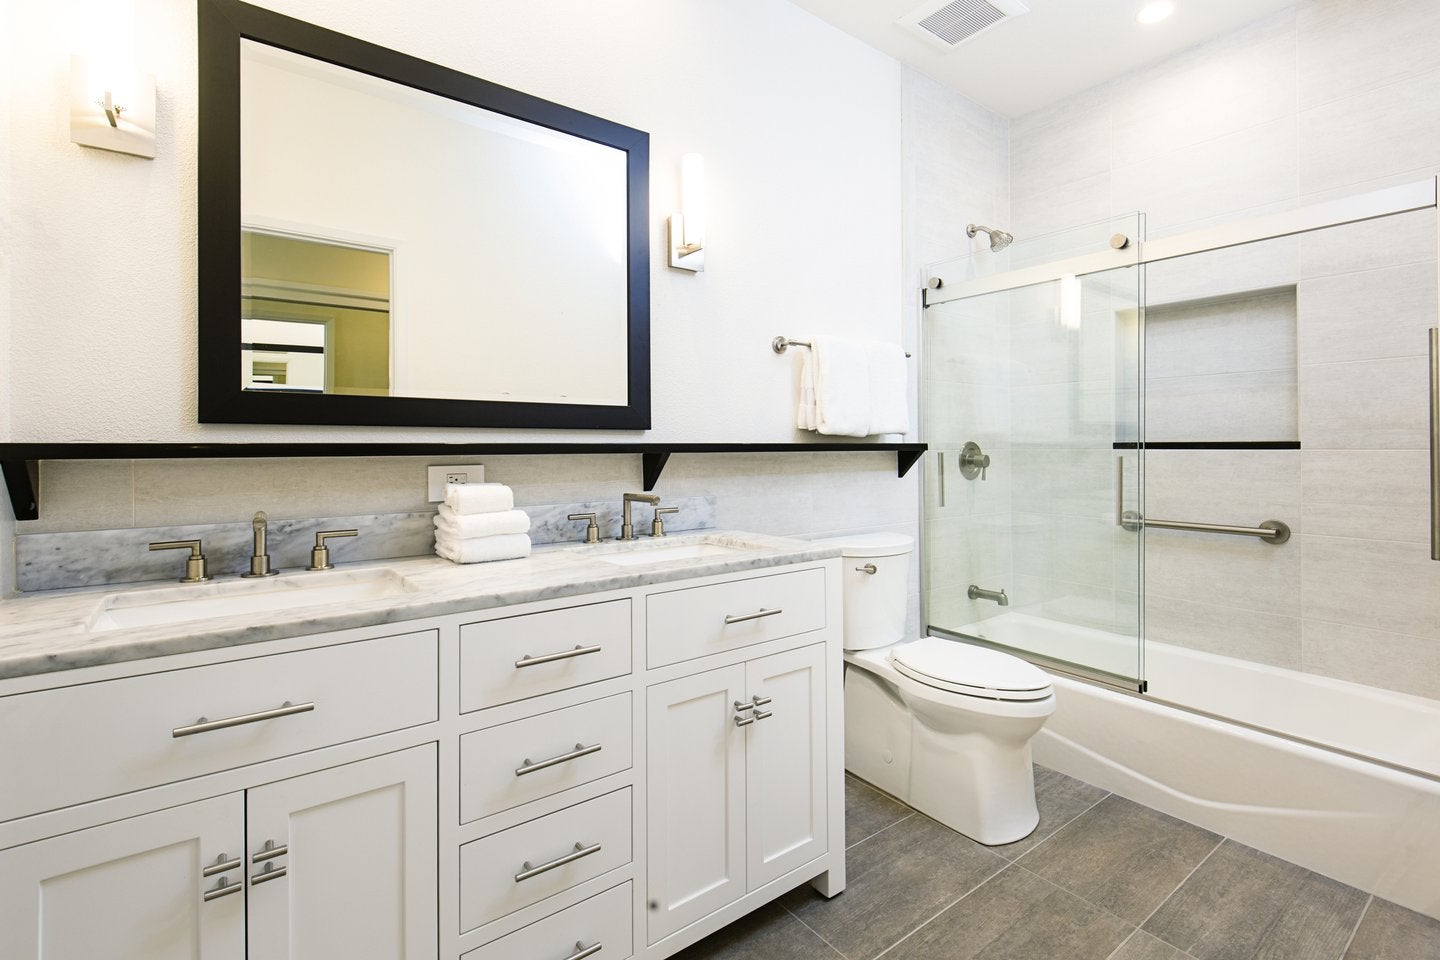 How Much Does a Bathroom Remodel Cost? | Millionacres